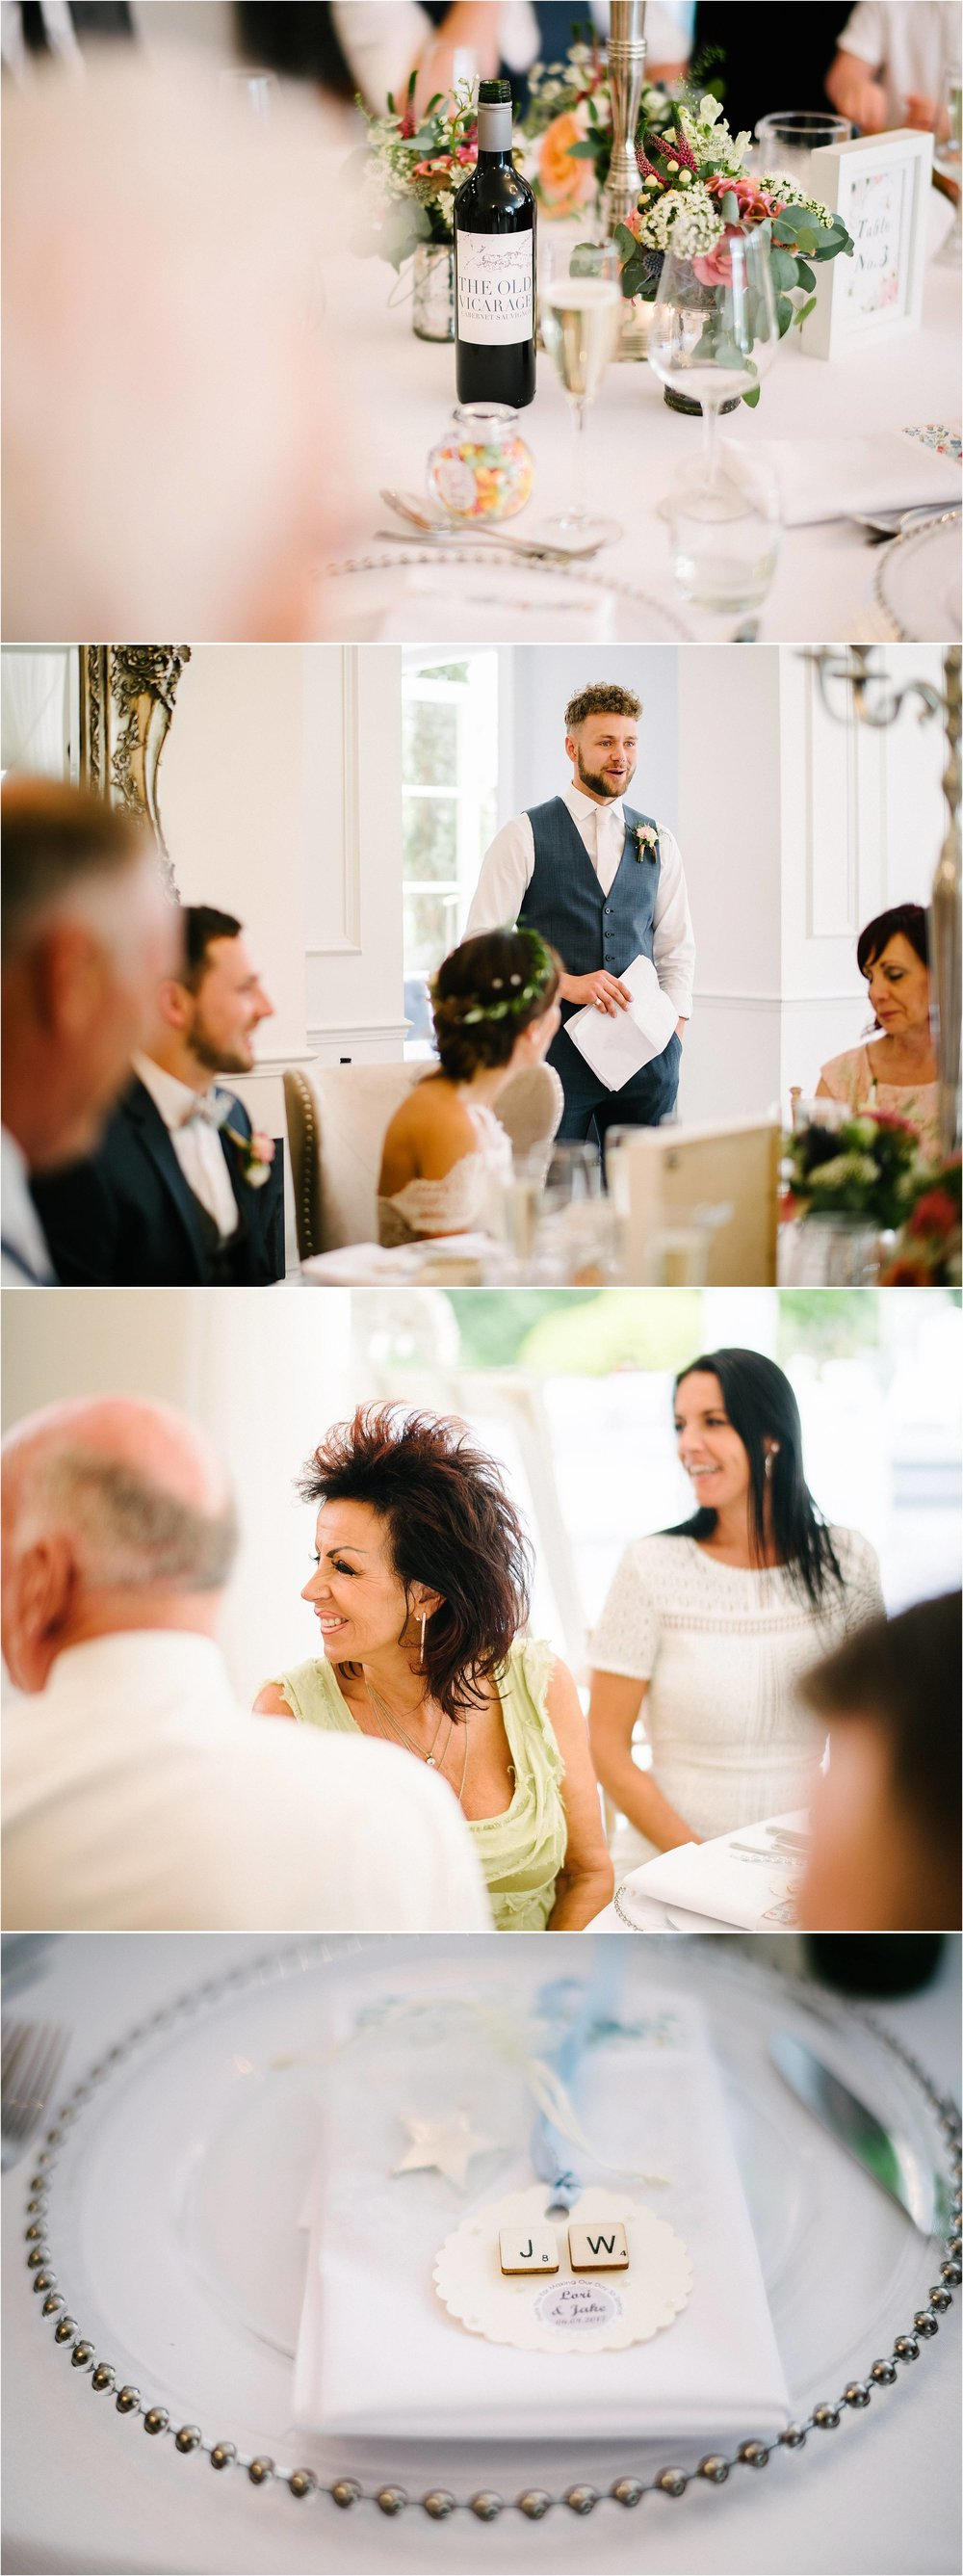 The Old Vicarage Boutique Wedding Photographer_0093.jpg